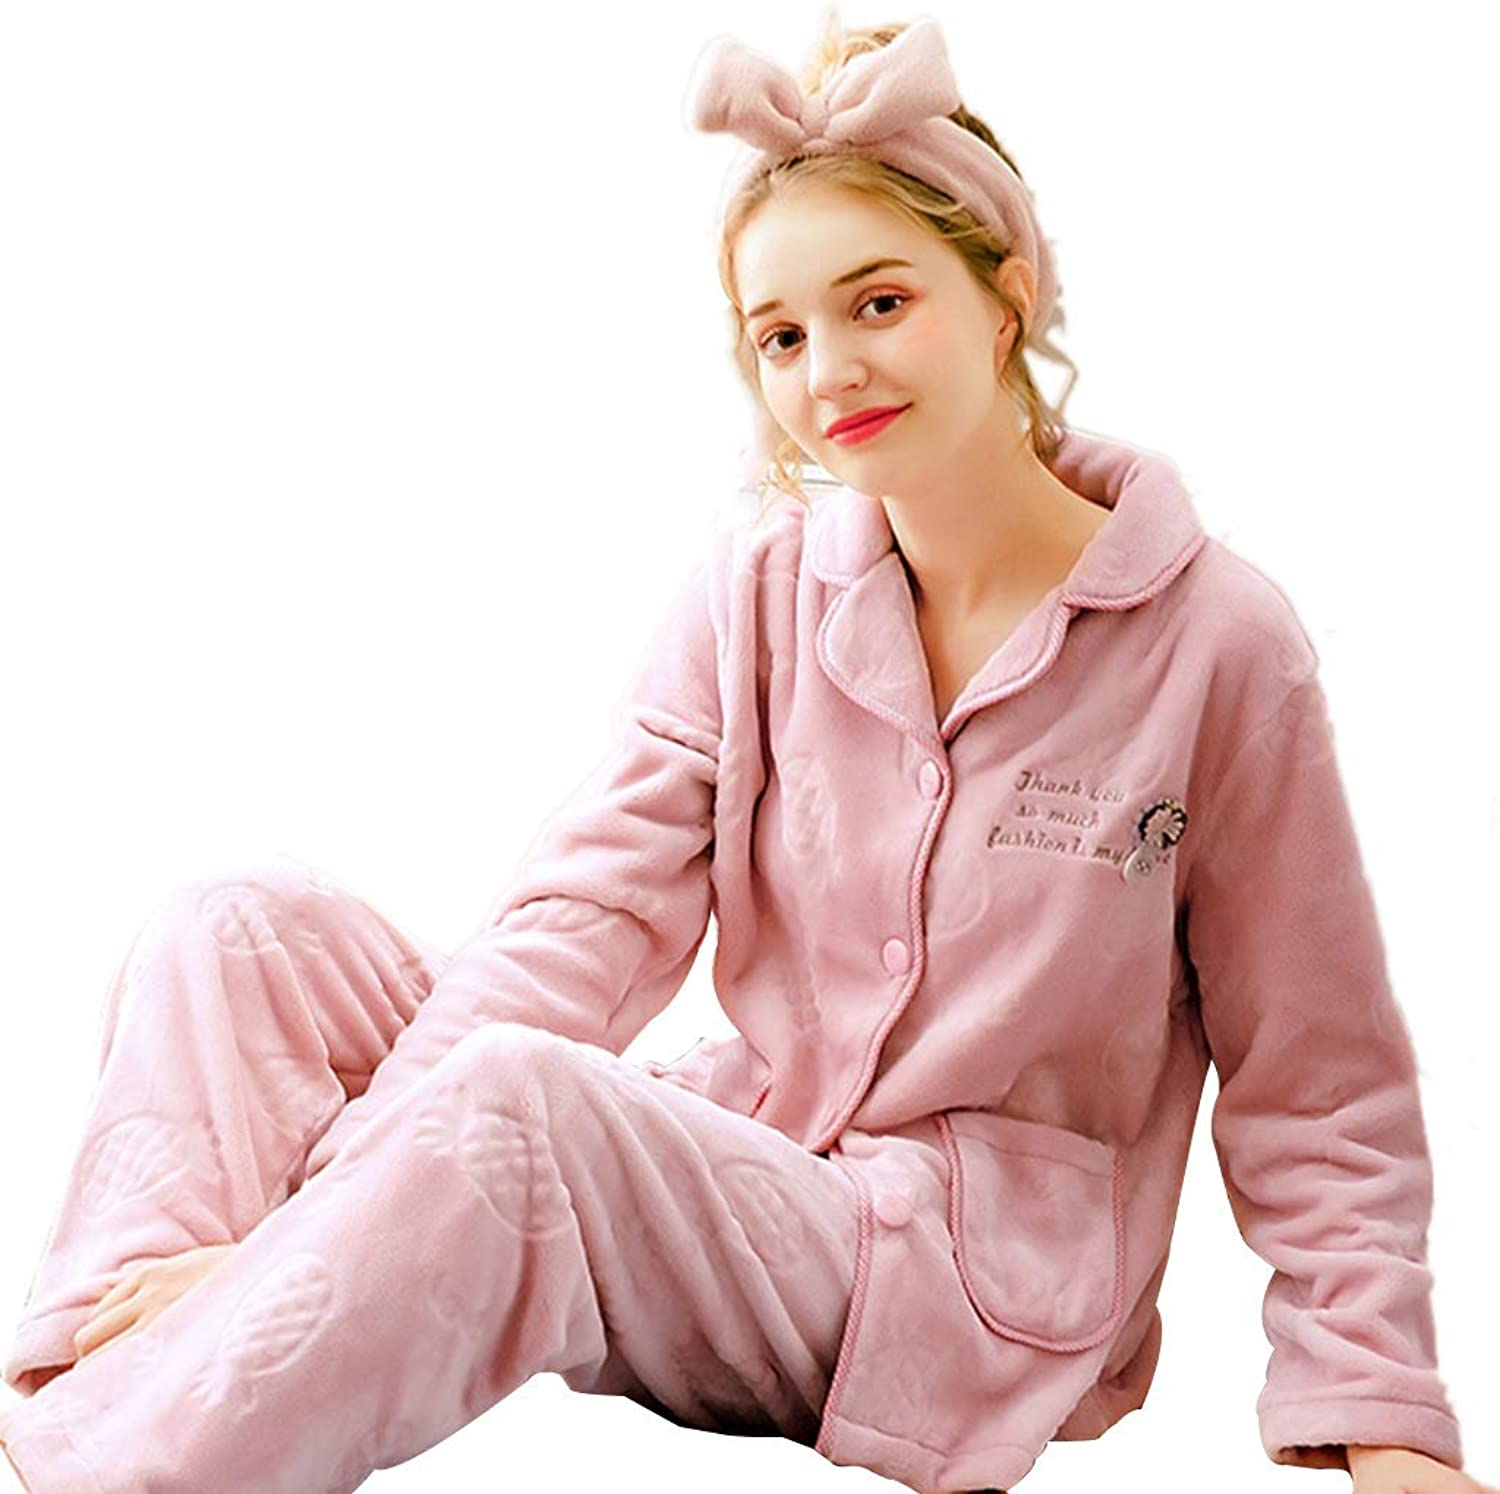 Nightgowns Women's Pajamas Winter Pajamas Autumn and Winter Coral Velvet Pajamas Thickening can be Worn Outside Flannel Warm Sweet Cute Home Service Suit Pajama Sets (color   Pink, Size   L)